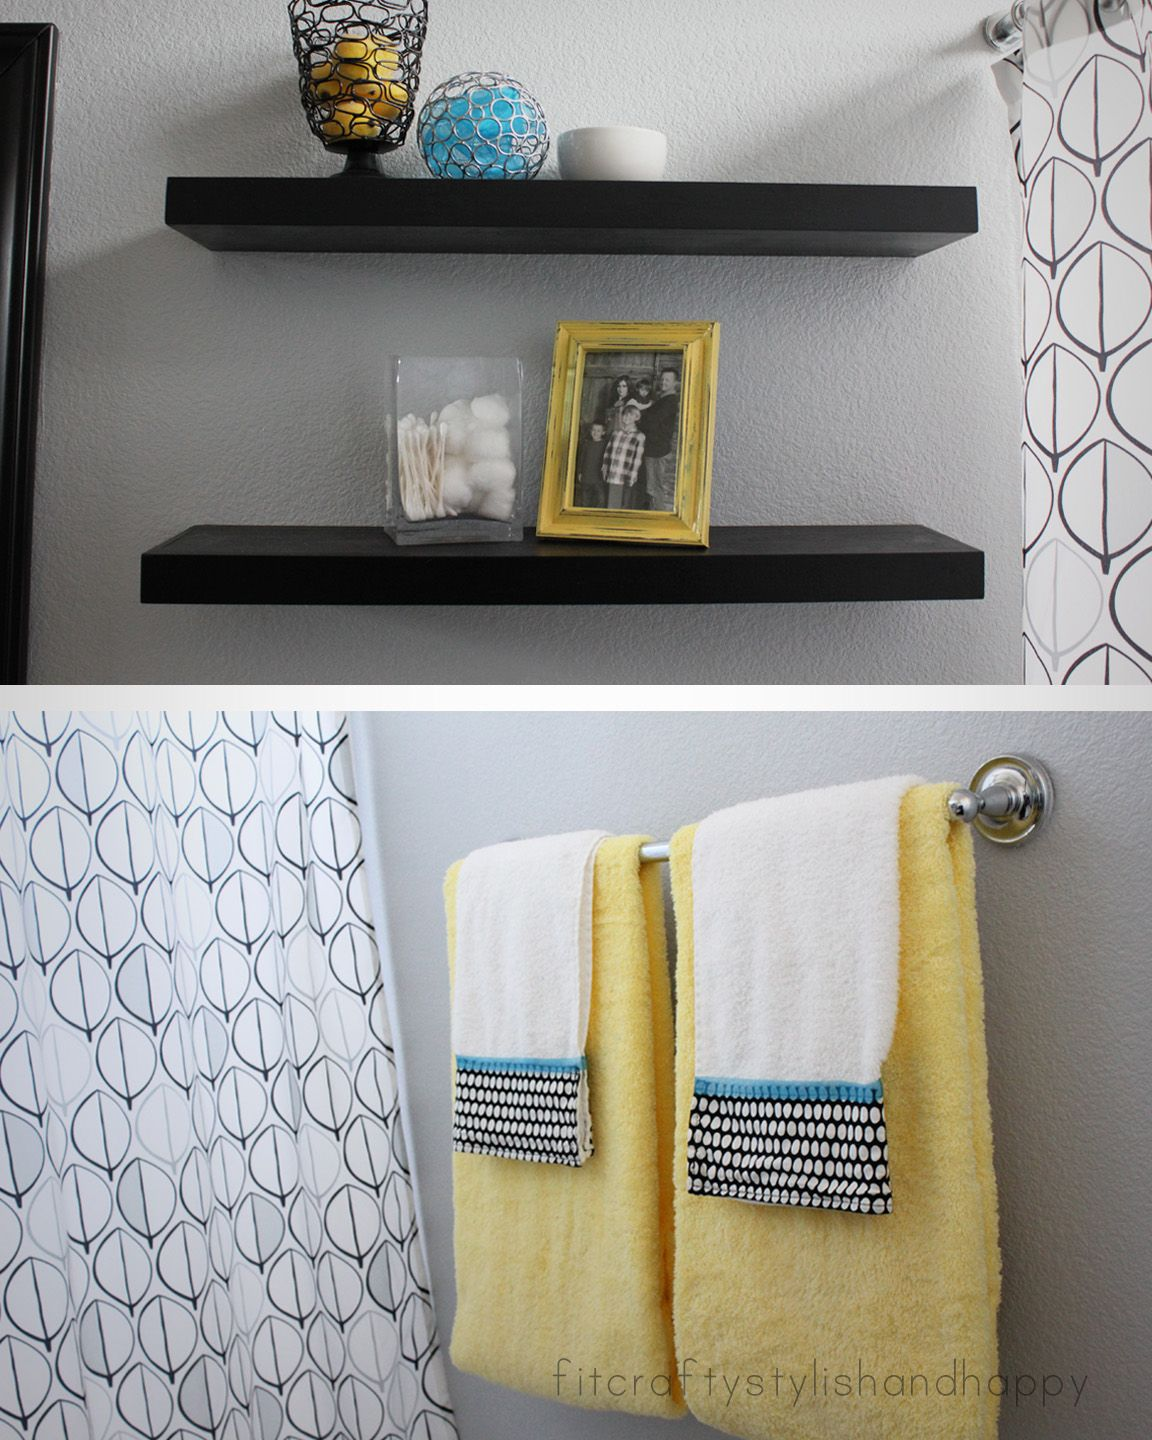 Fit Crafty Stylish And Happy Guest Bathroom Makeover Love The - Black and white bathroom towels for bathroom decor ideas